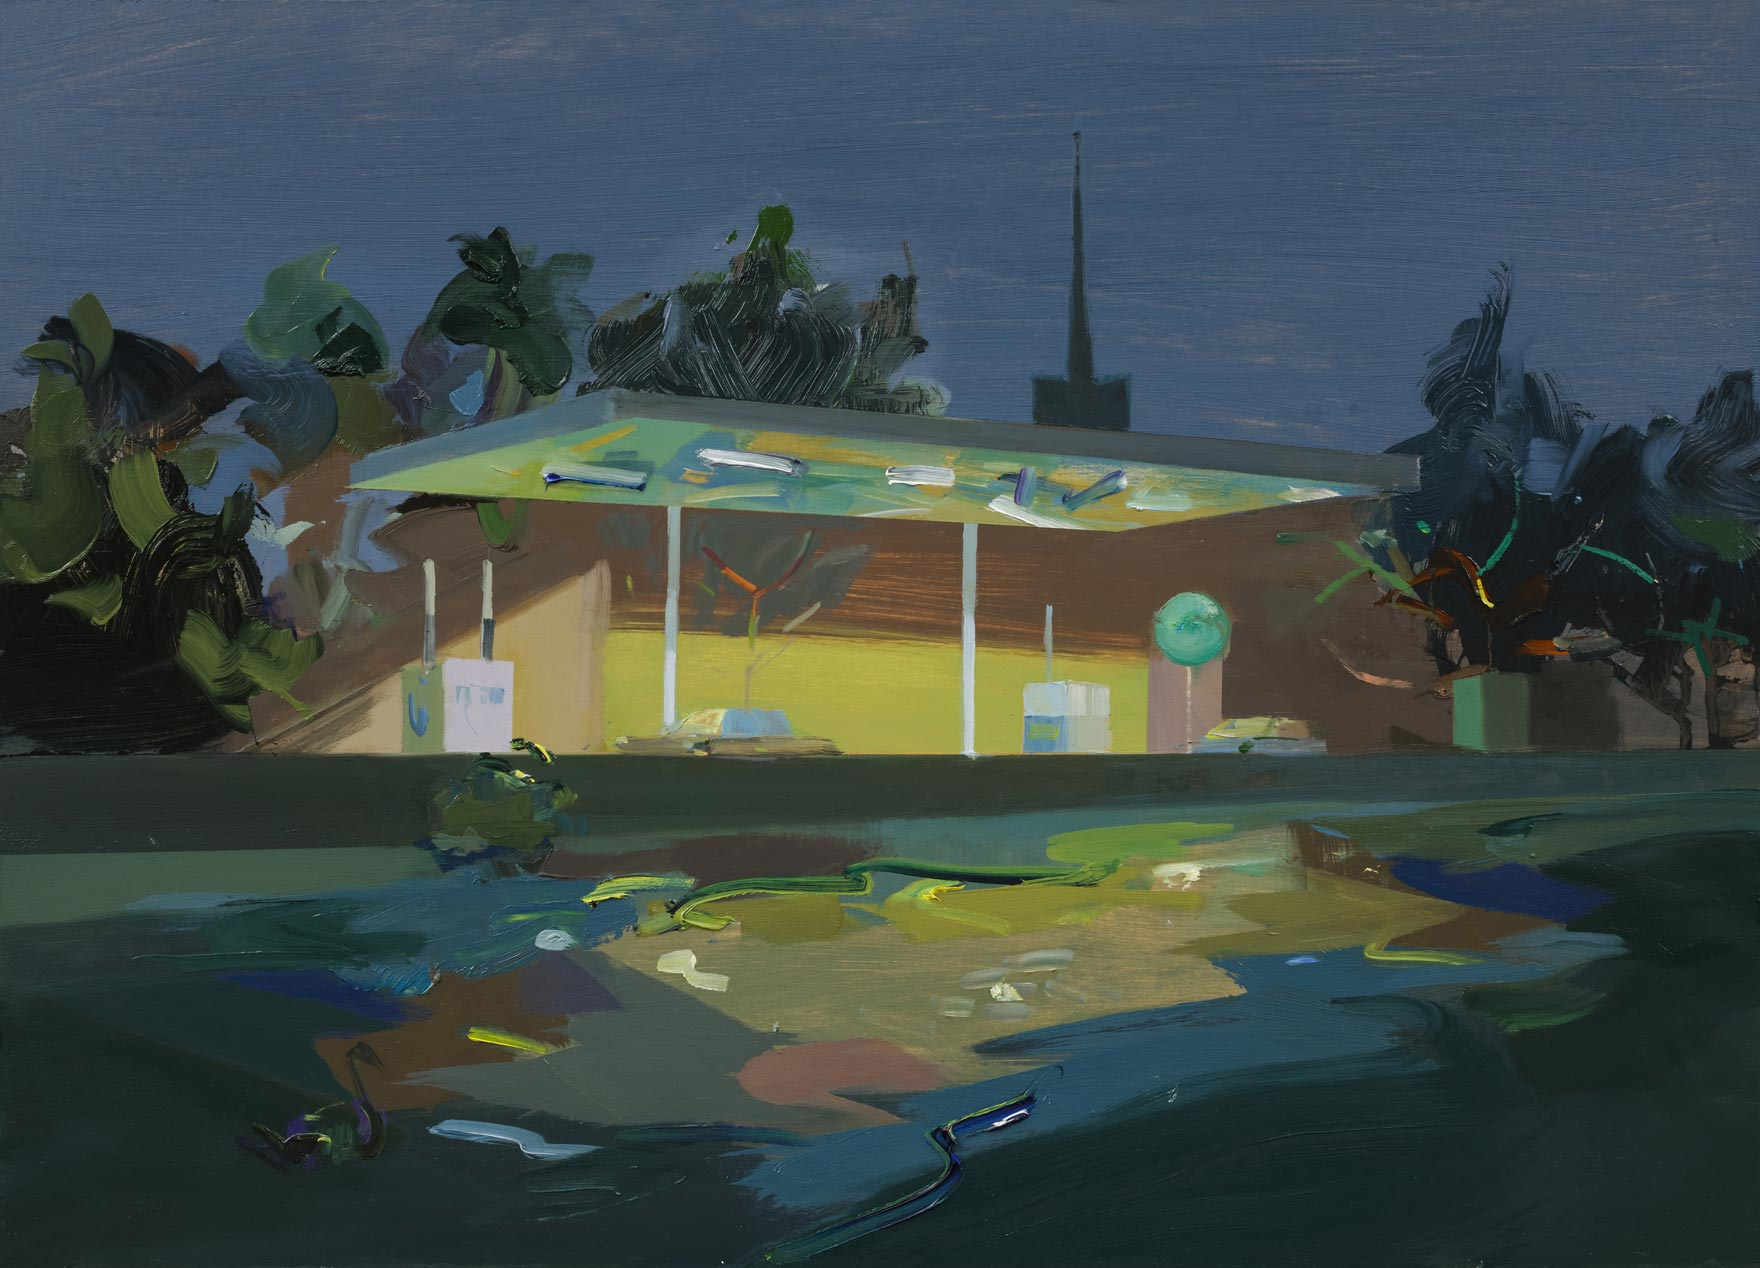 Mairead-O'hEocha_Mespil-Road-Petrol-Station-and-Canal_copyright_the-artist-and-mother's-tankstation